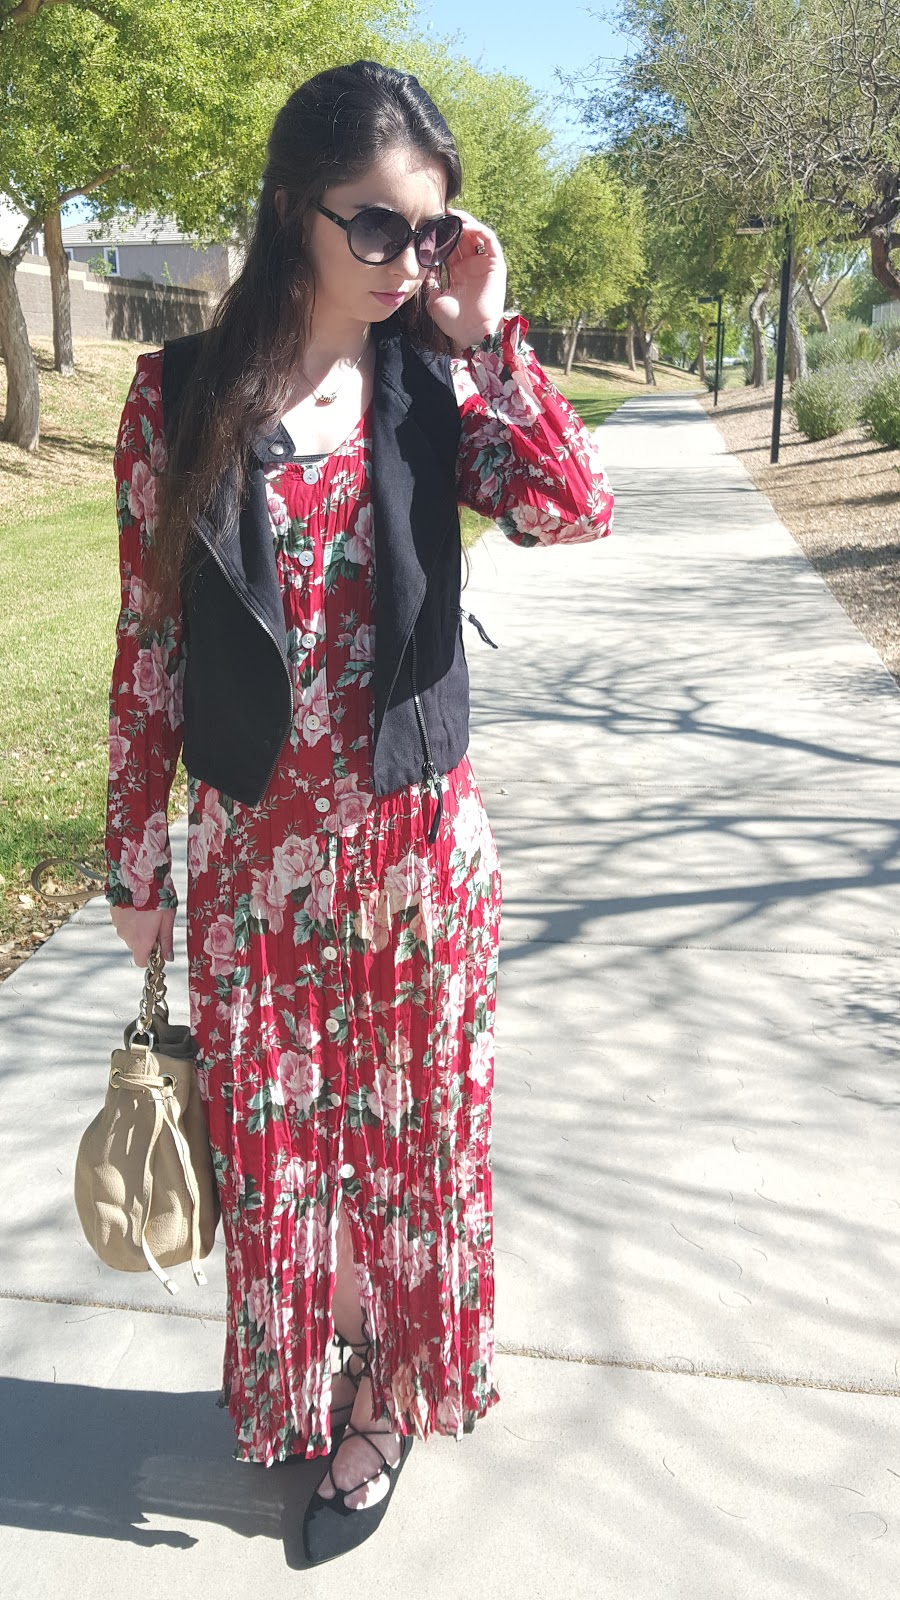 Spring trends 2016- maxi dresses, pleats, floral, lace up flats, and suede